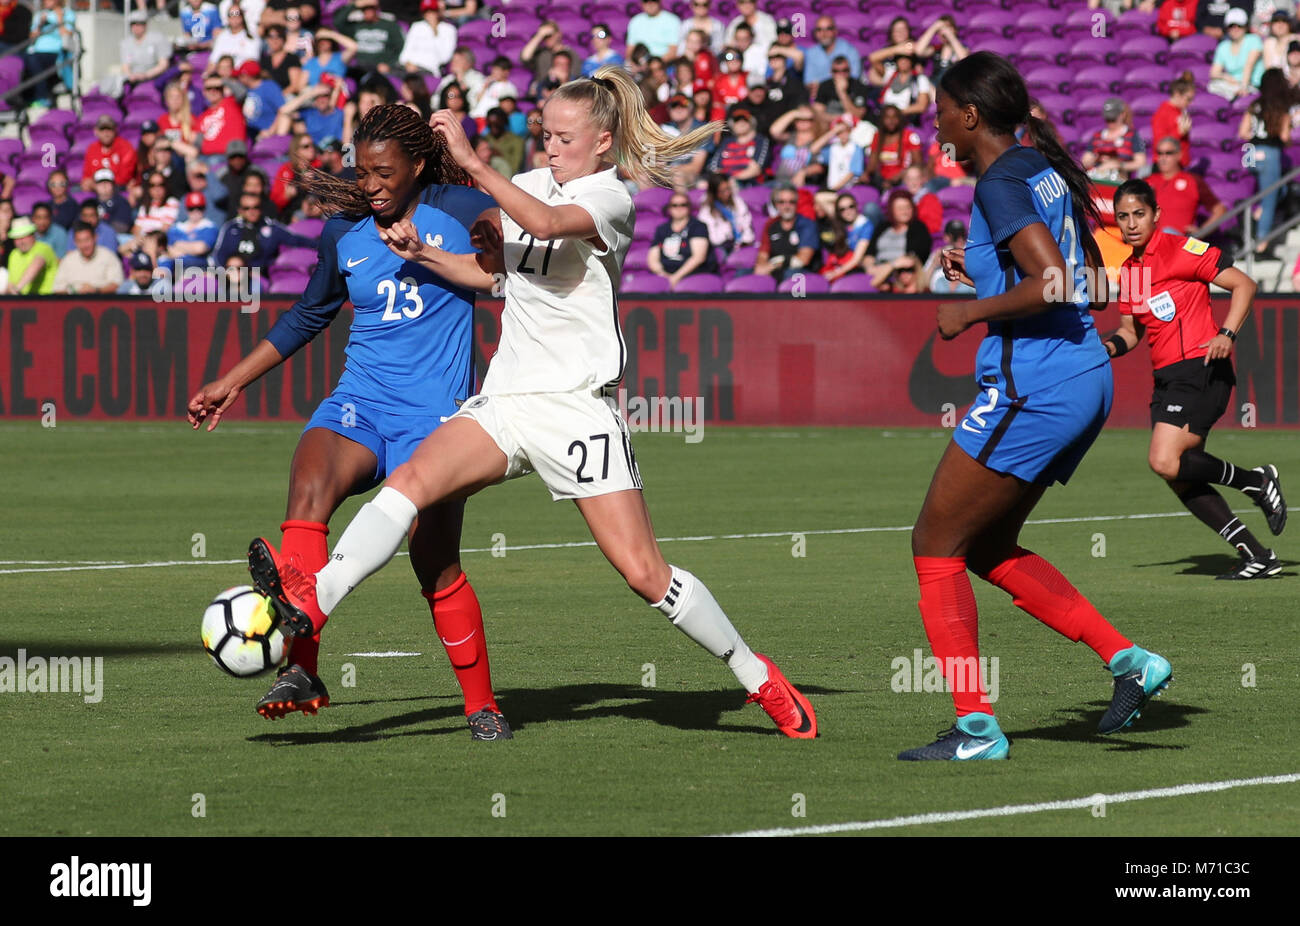 Orlando, Florida, USA. 7th Mar, 2018. Germany forward Lea Schüller (27) battles for ball possession with - Stock Image